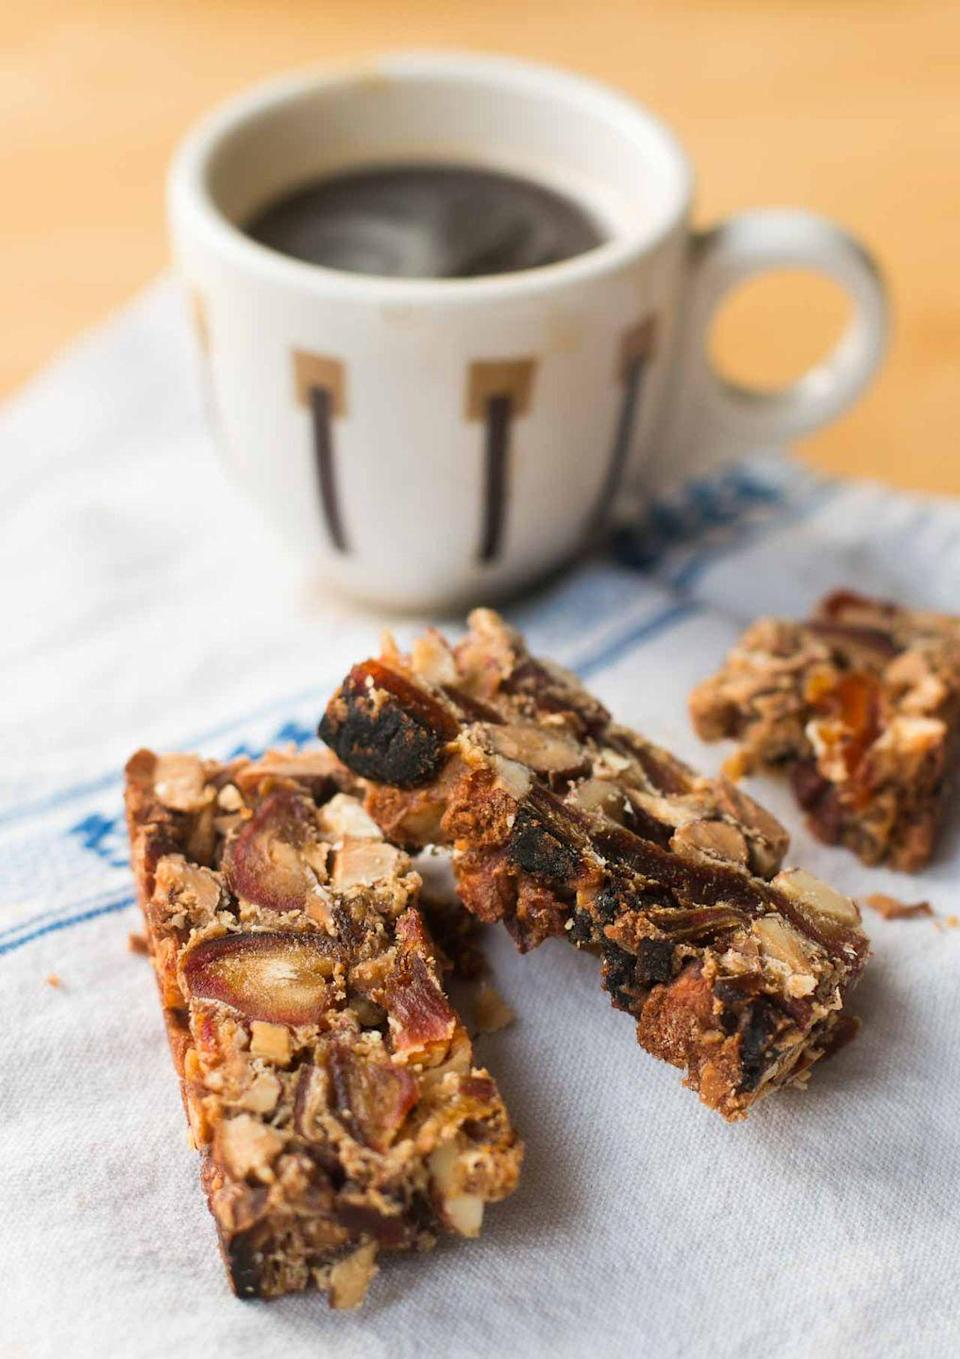 "<p>Just like a biscotti, serve these fruitcake bars to have alongside coffee after Christmas dinner.</p><p><strong>Get the recipe at <a href=""https://www.davidlebovitz.com/fruitcake-bar-recipe/"" rel=""nofollow noopener"" target=""_blank"" data-ylk=""slk:David Lebovitz"" class=""link rapid-noclick-resp"">David Lebovitz</a>.</strong></p><p><strong><strong><a class=""link rapid-noclick-resp"" href=""https://www.amazon.com/Jamie-Oliver-Professional-Heavy-guage-Construction/dp/B01D6KCLUM/ref=sr_1_1?tag=syn-yahoo-20&ascsubtag=%5Bartid%7C10050.g.3610%5Bsrc%7Cyahoo-us"" rel=""nofollow noopener"" target=""_blank"" data-ylk=""slk:SHOP BAKING PANS"">SHOP BAKING PANS</a></strong><br></strong></p>"